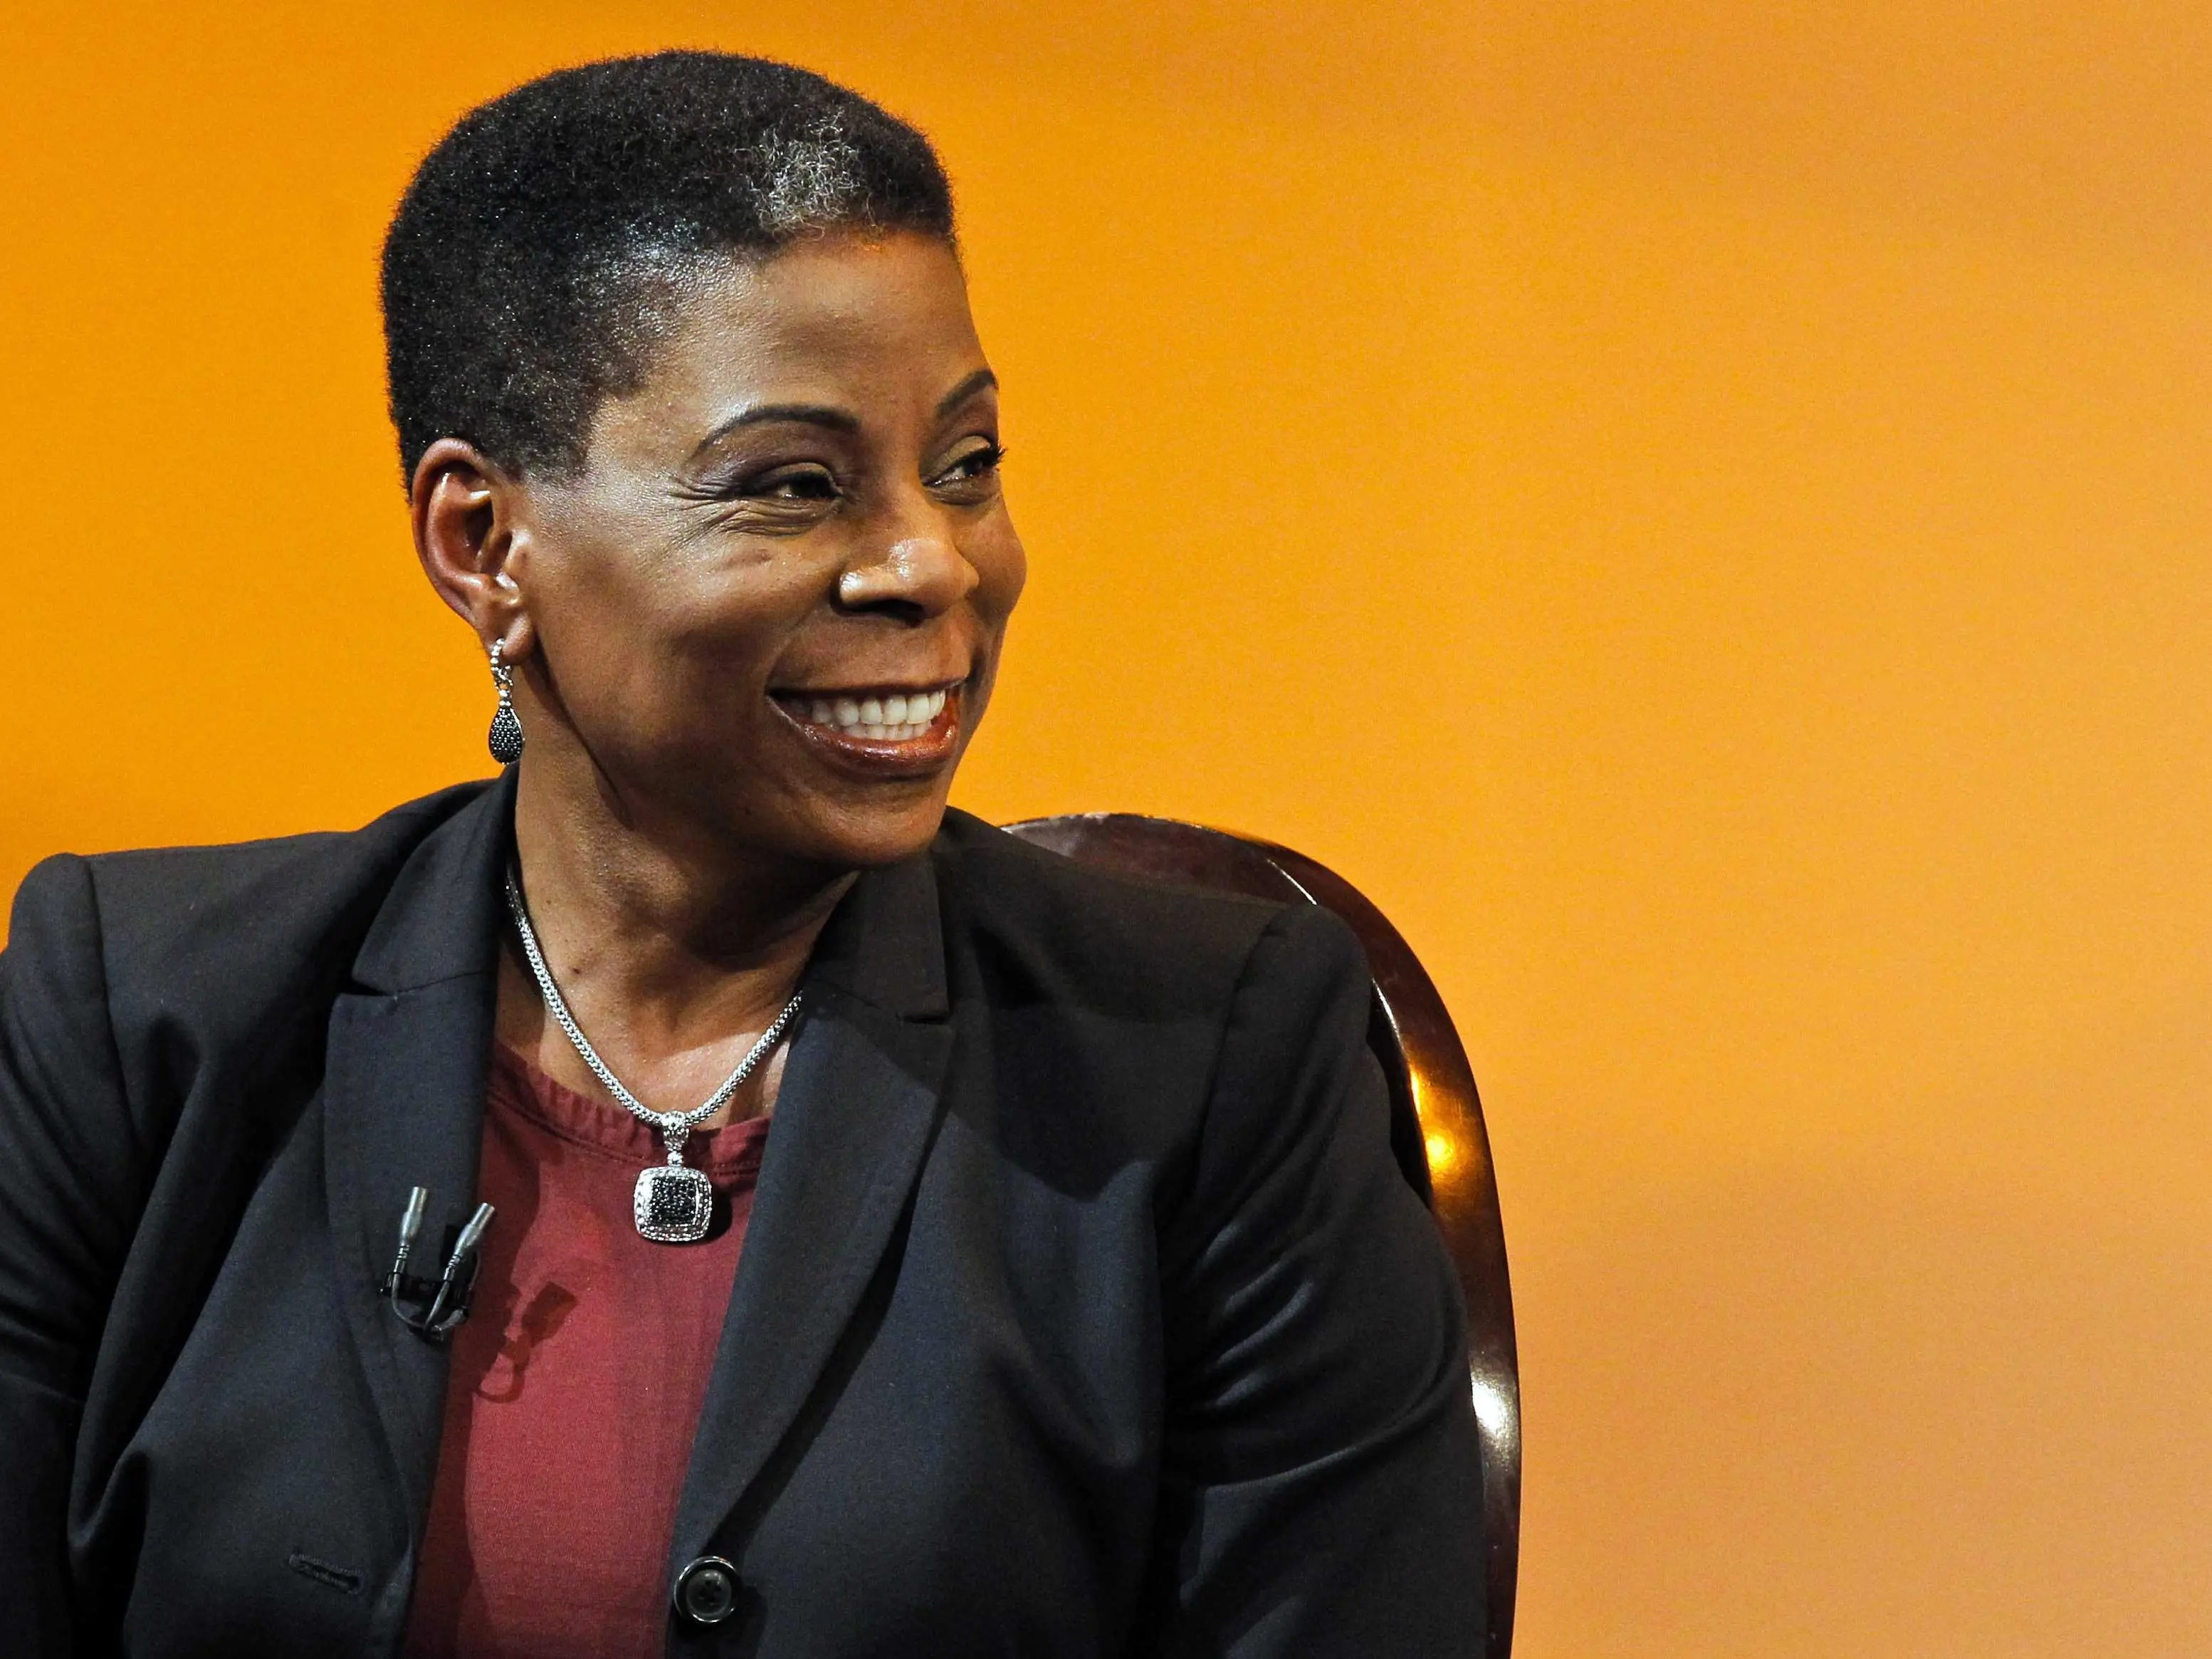 Ursula Burns grew up in a housing project on Manhattan's Lower East Side and now runs Xerox.